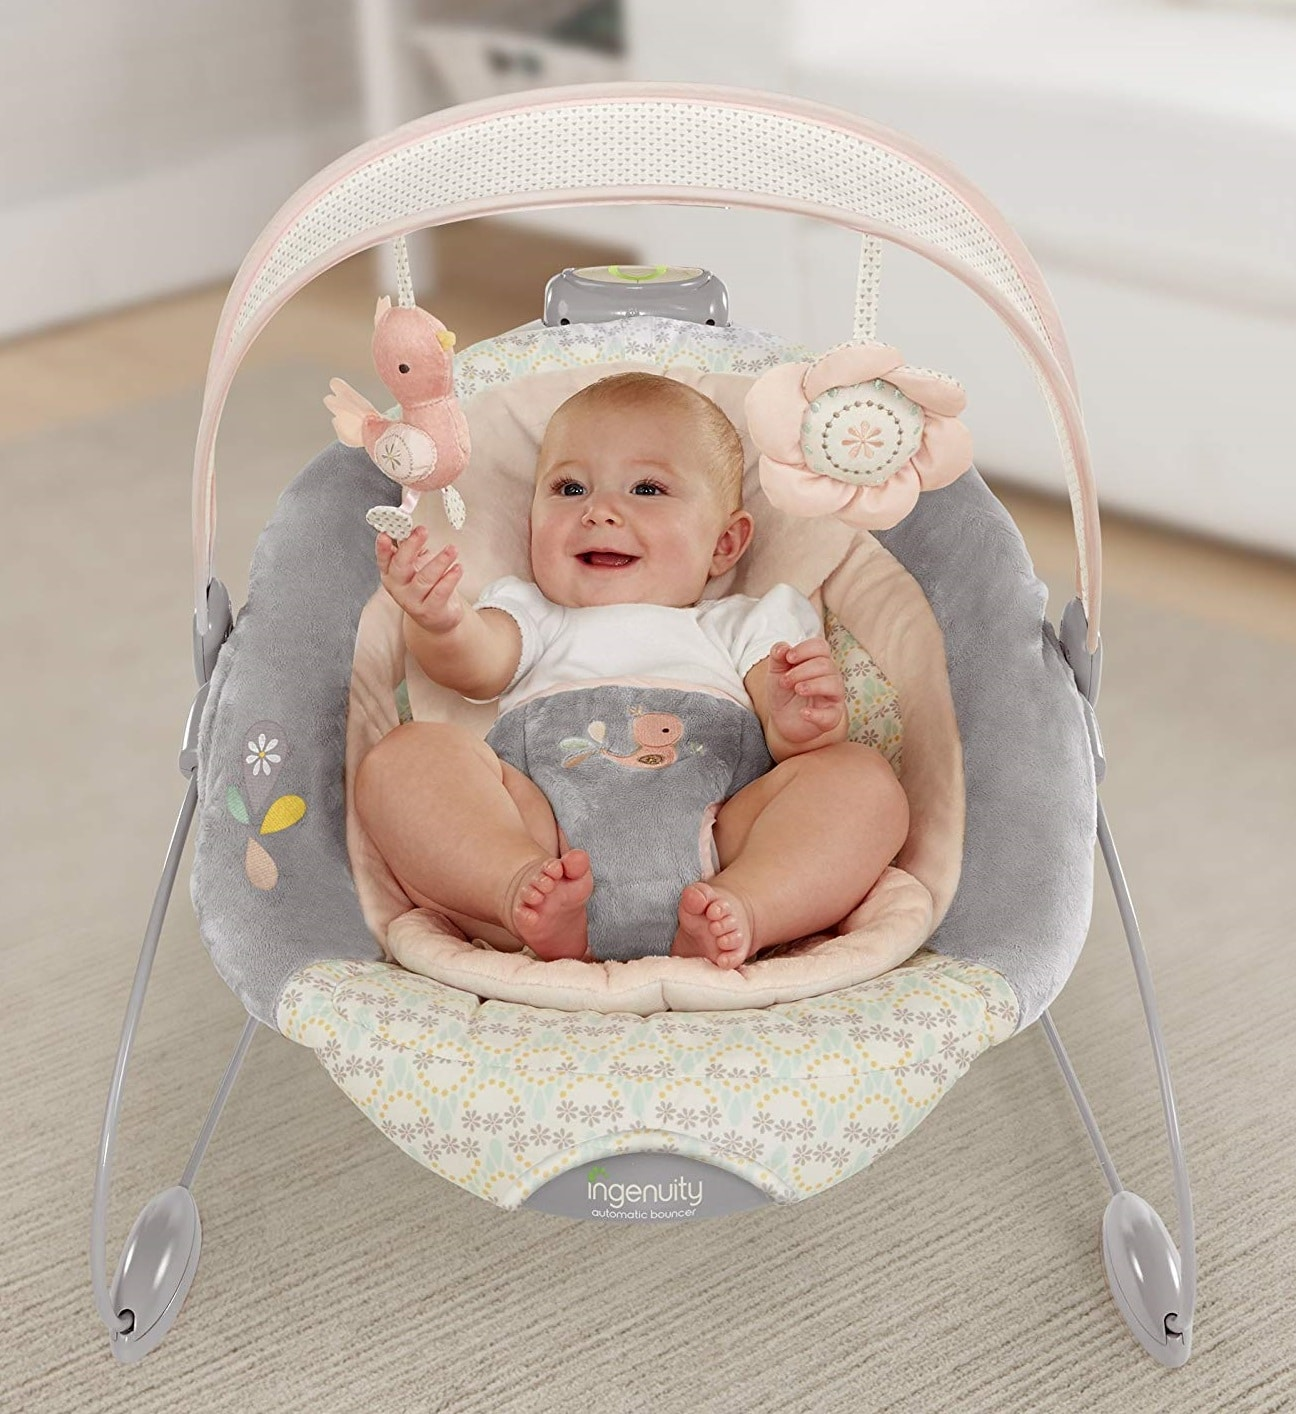 Ingenuity Smartbounce Automatic Baby Bouncers